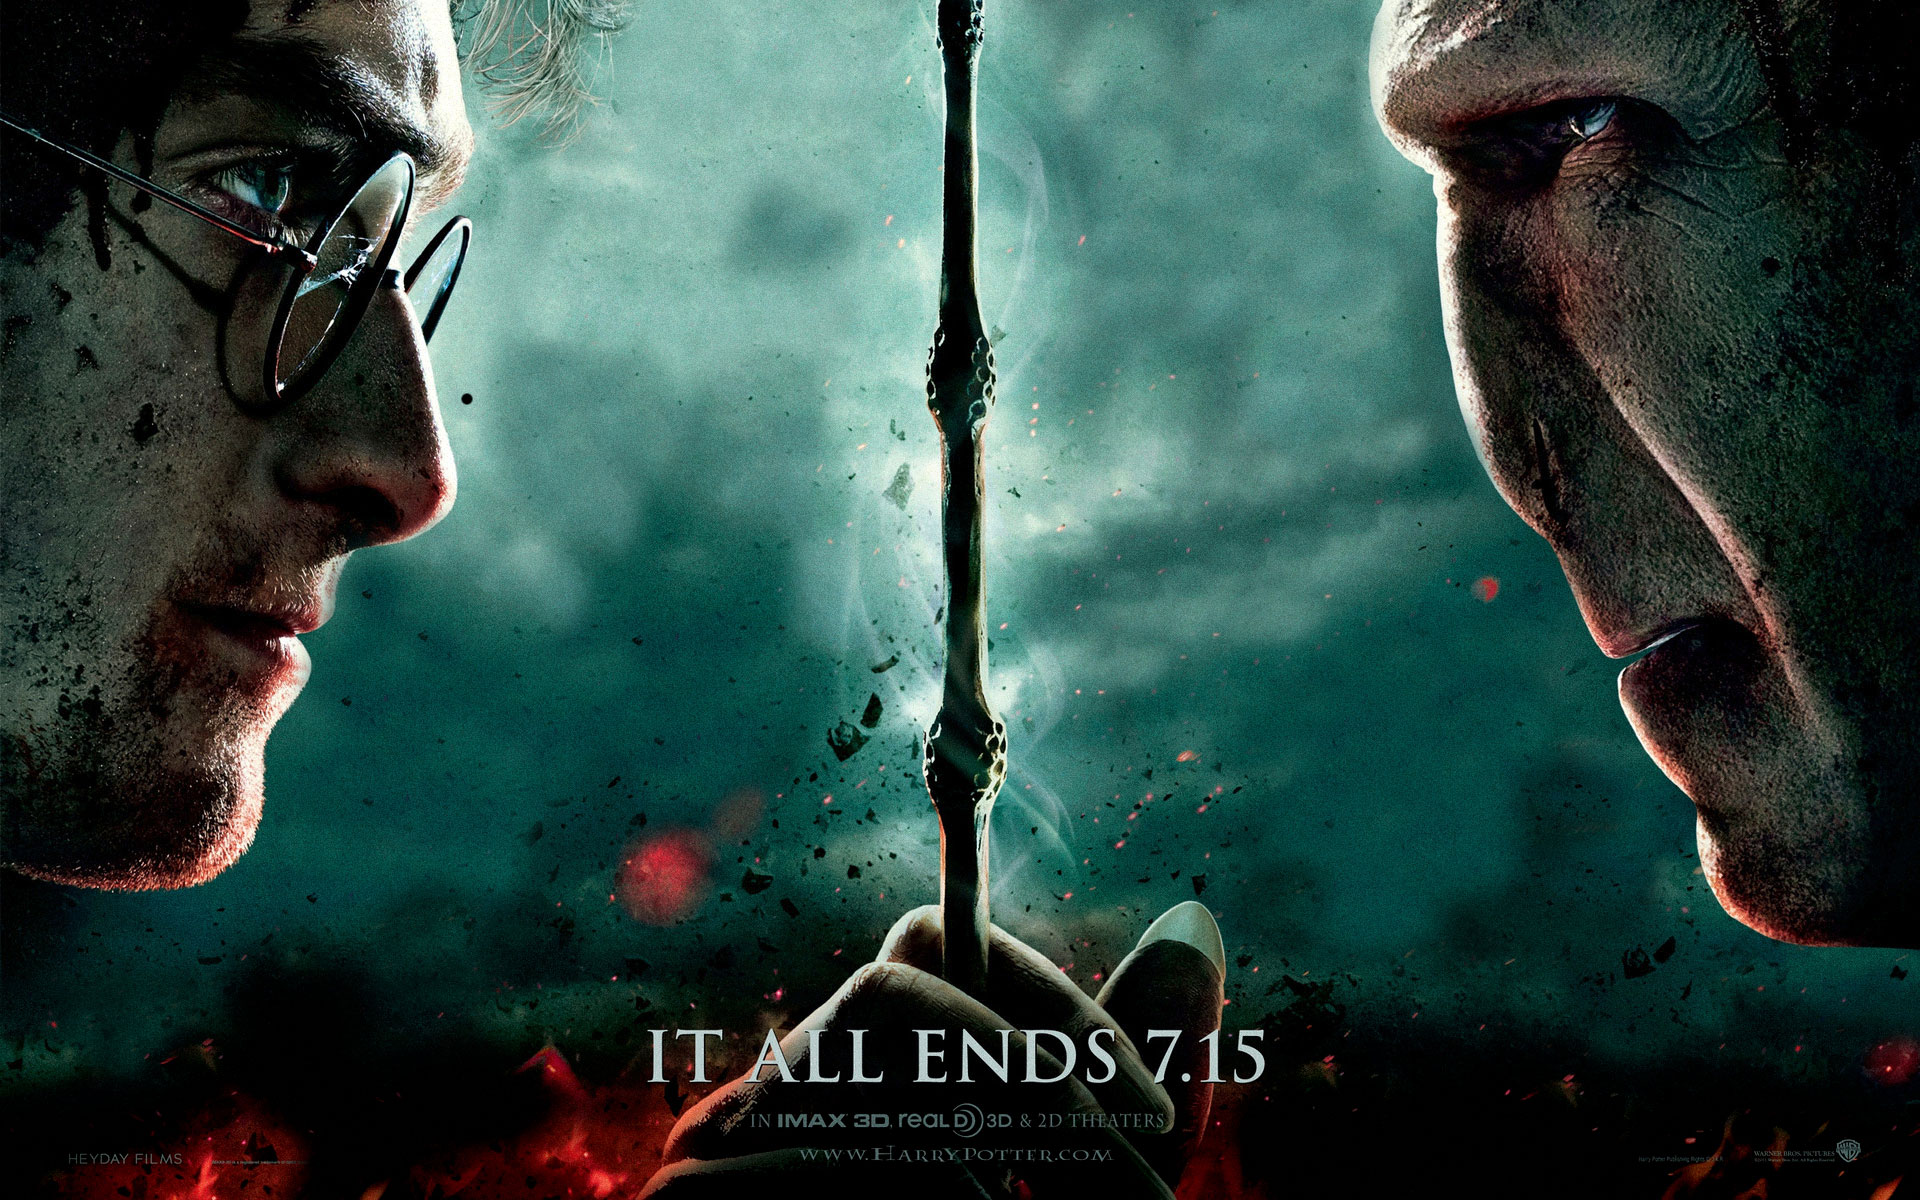 Harry Potter And The Deathly Hallows: Part Ii (2011) - HD Wallpaper